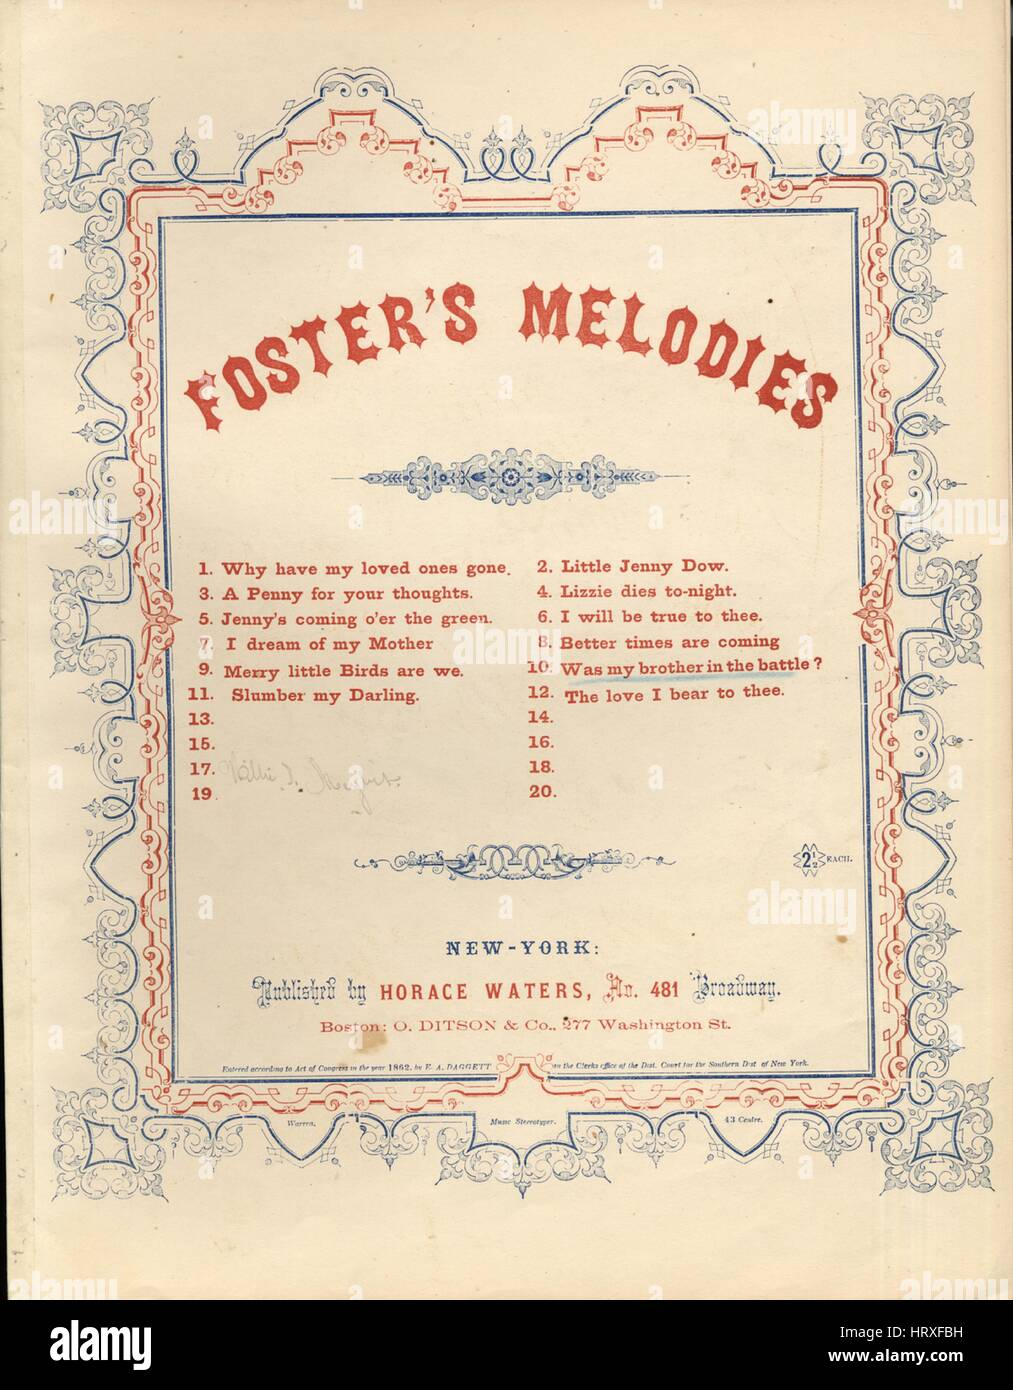 Sheet music cover image of the song 'Foster's Melodies No10